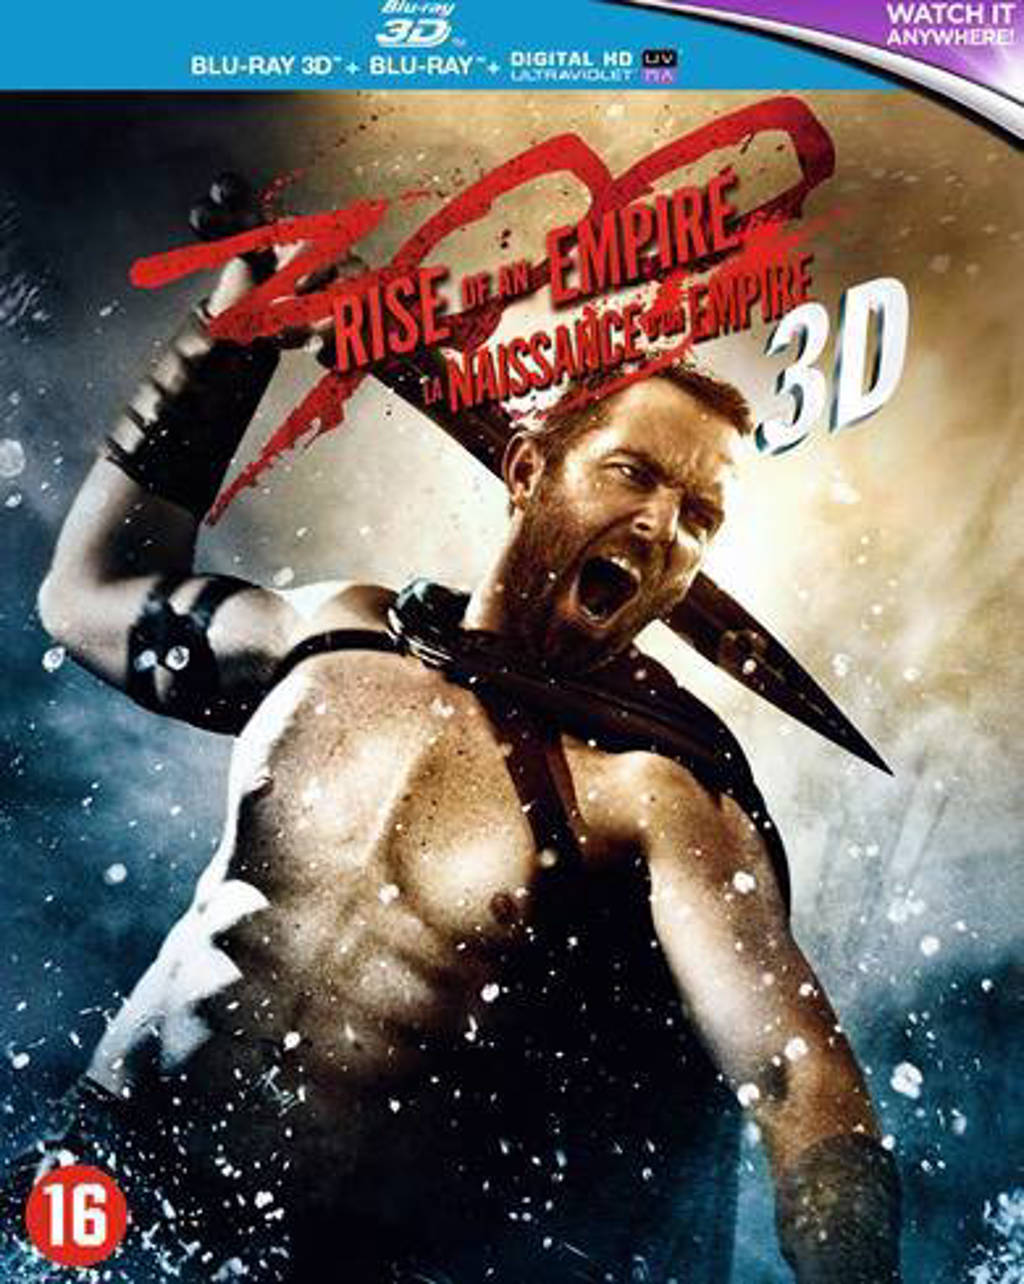 300 - Rise of an empire (3D) (Blu-ray)